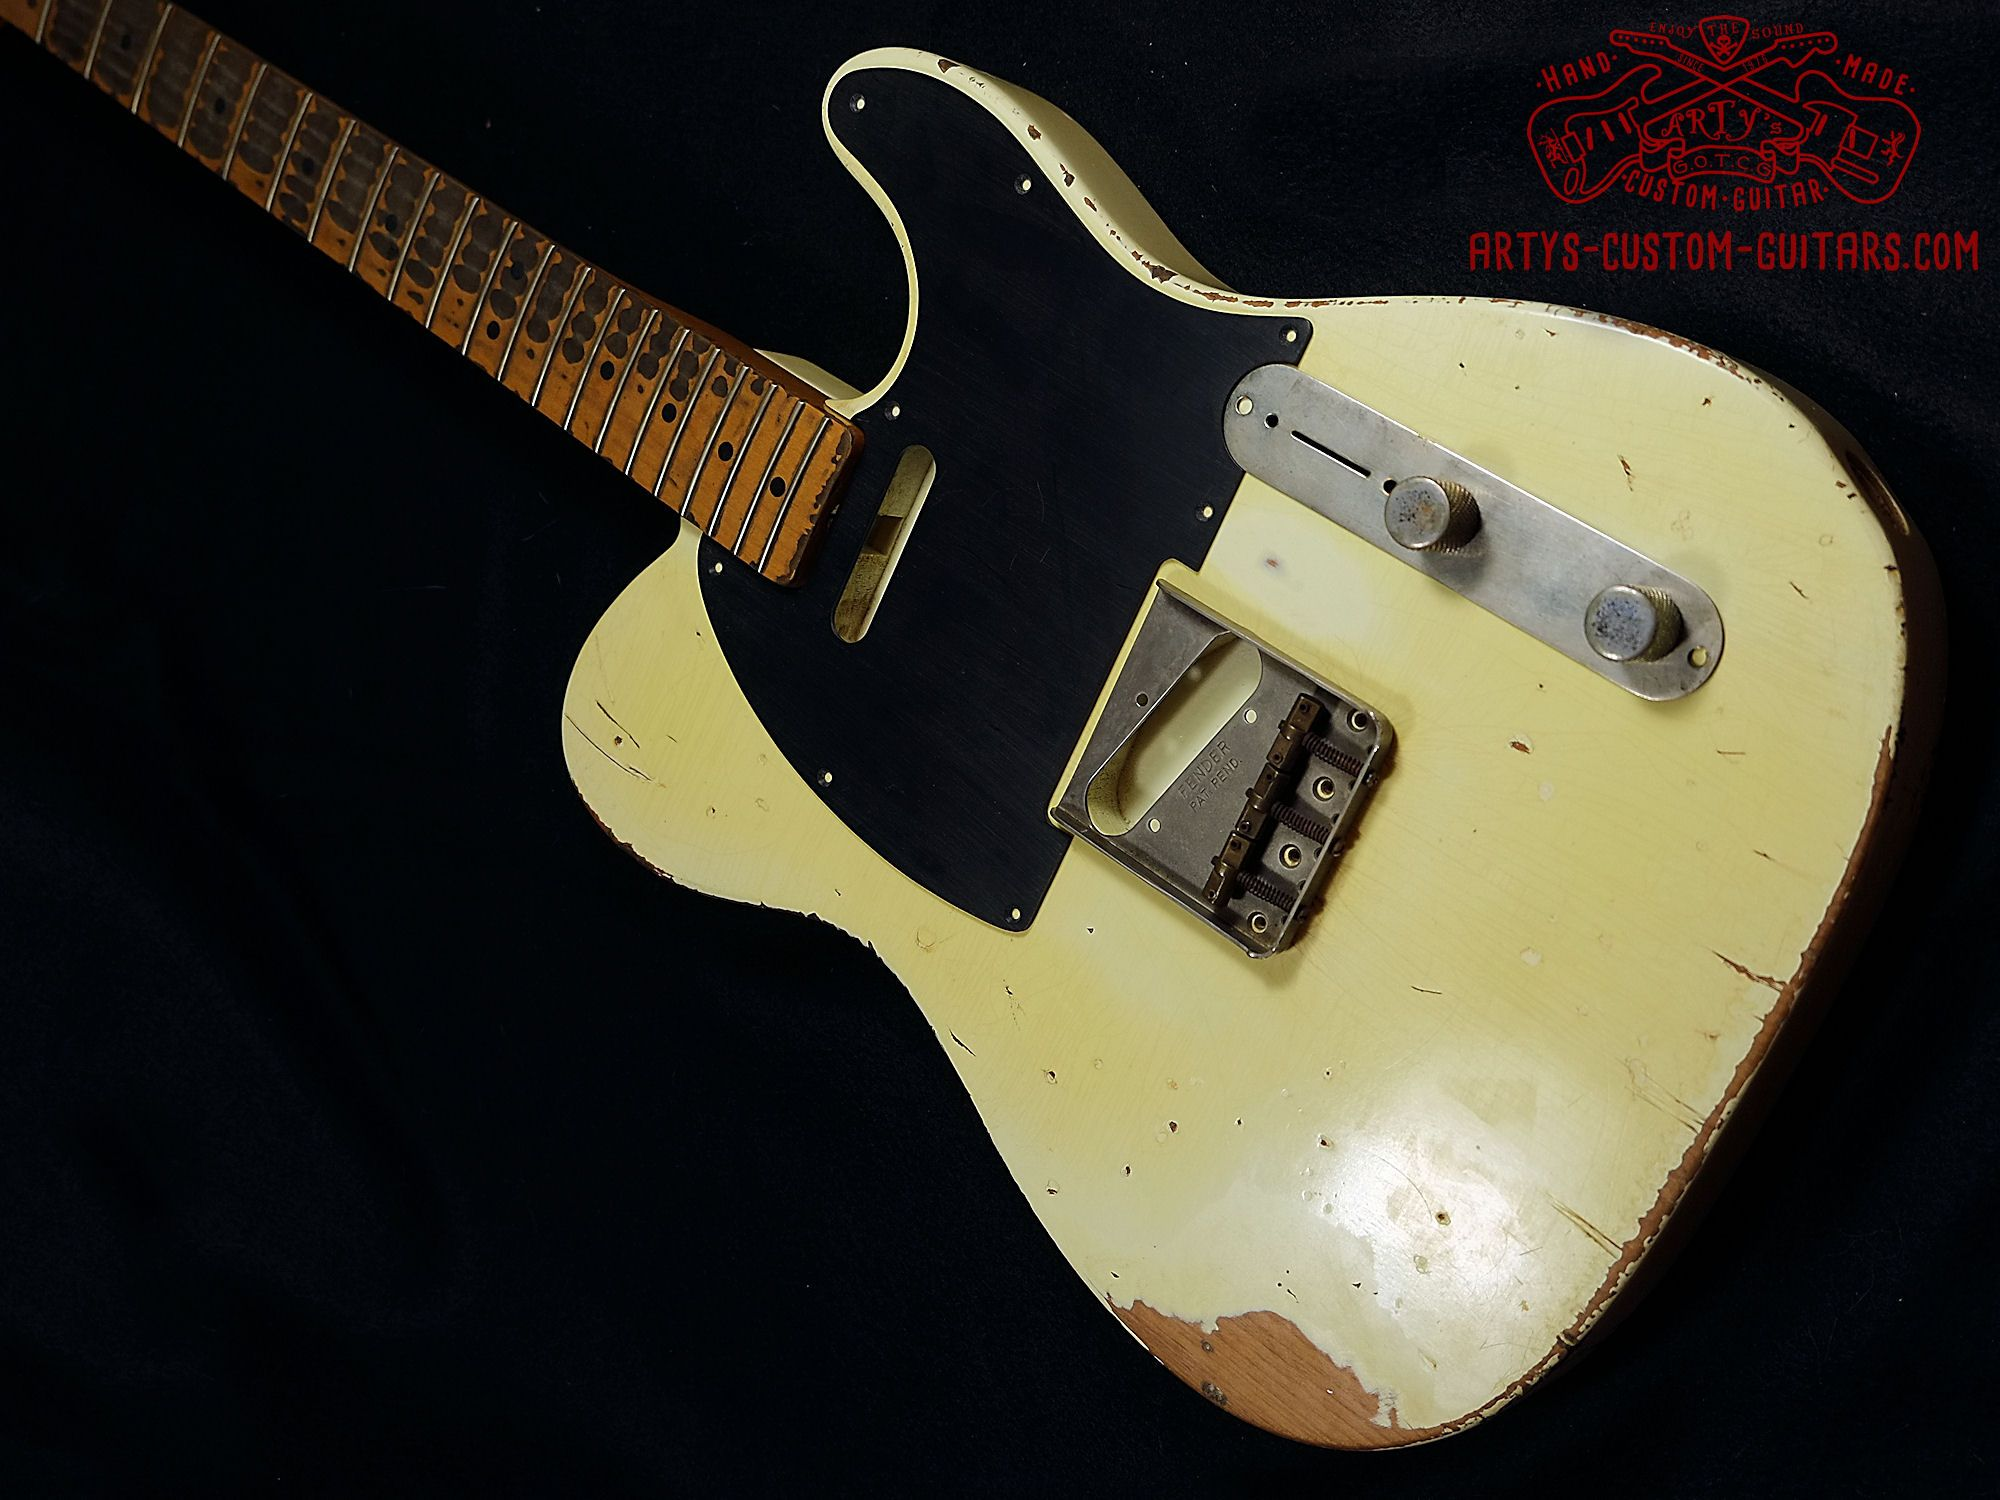 hight resolution of arty s relic aged custom shop guitars gallery prewired kit harness assembly wiring diagram telecaster stratocaster p bass j bass les paul jr